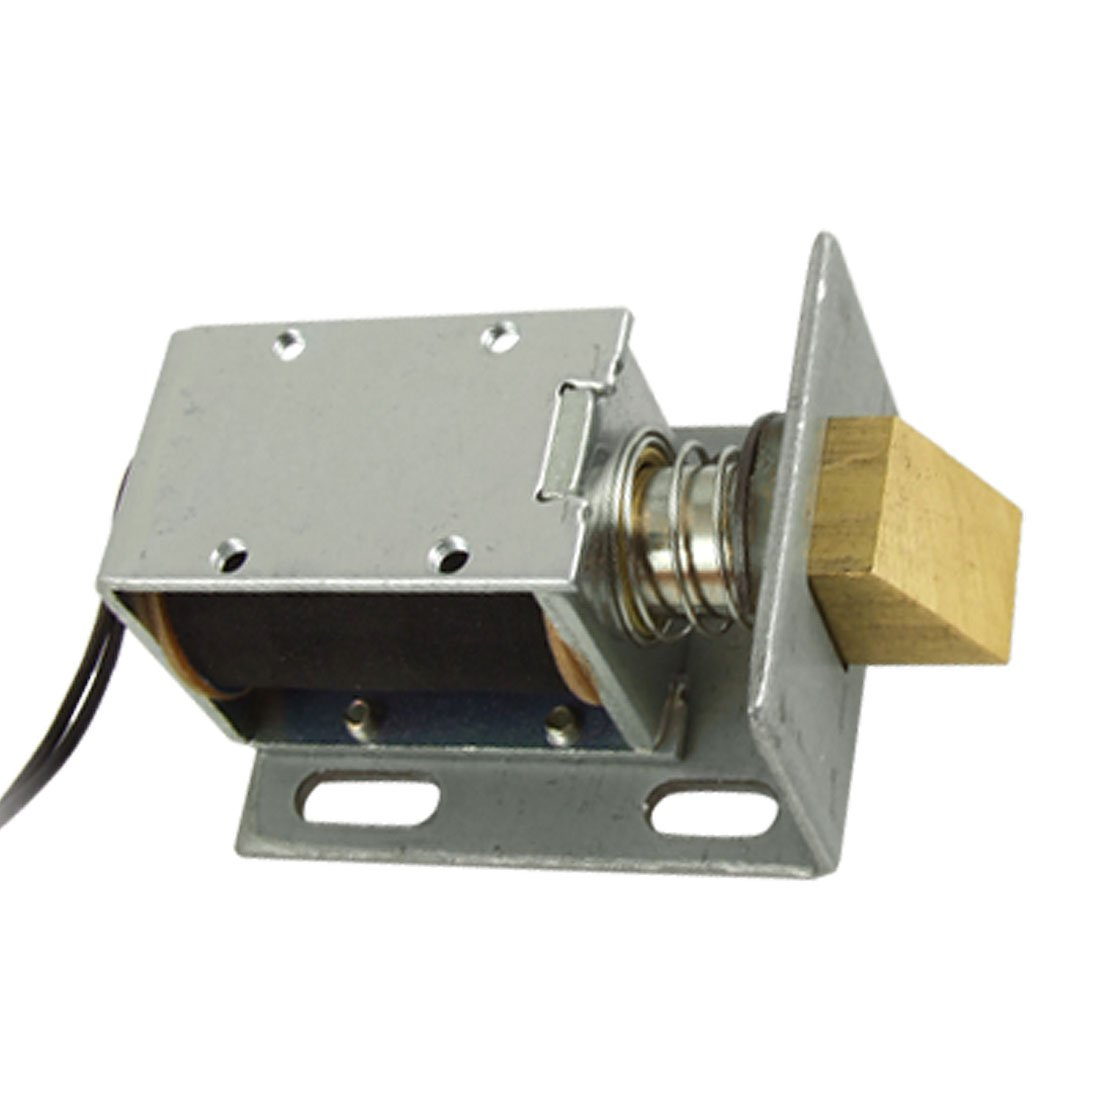 Uxcell Dc 12v Open Frame Type Solenoid For Electric Door How To Wire In A Simple Main Power Cutoff Using The Lock Home Improvement